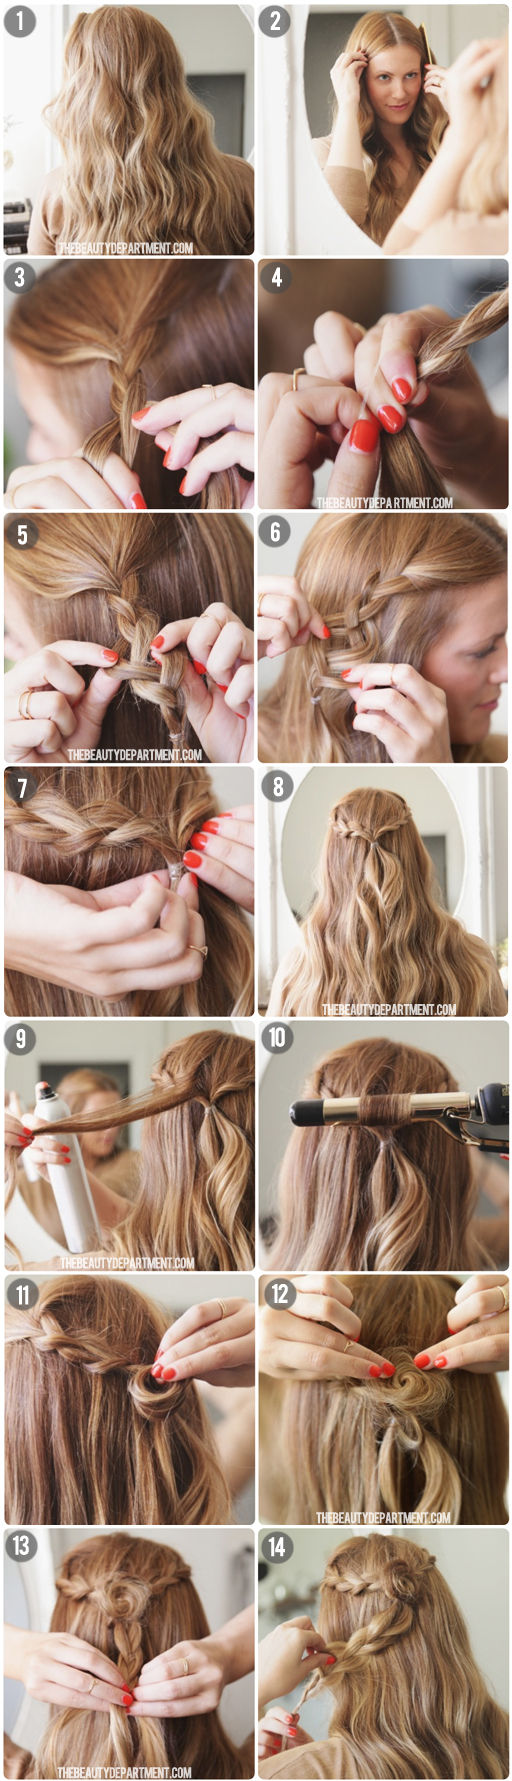 18 Great Hairstyle Ideas and Tutorials for Perfect Holiday Look (11)